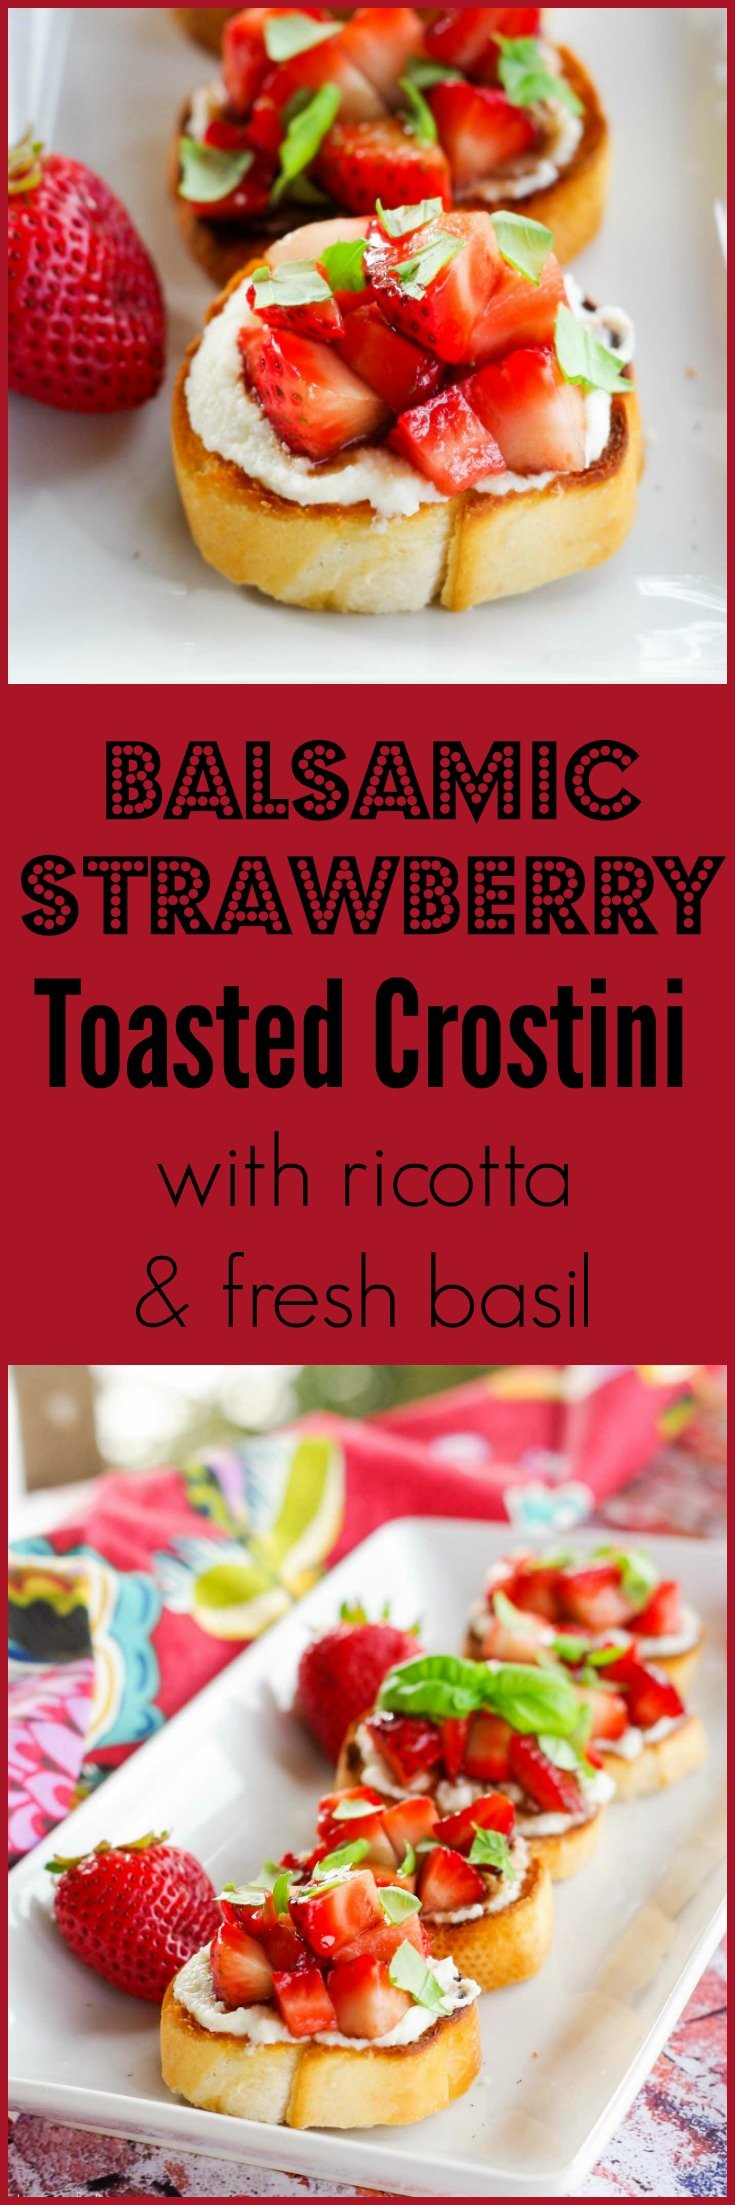 Balsamic Strawberry Toasted Crostini with Ricotta & Fresh Basil | www.homeandplate.com | Fresh balsamic strawberries served on toasted crostini with a honeyed ricotta and fresh basil make the perfect party appetizer.